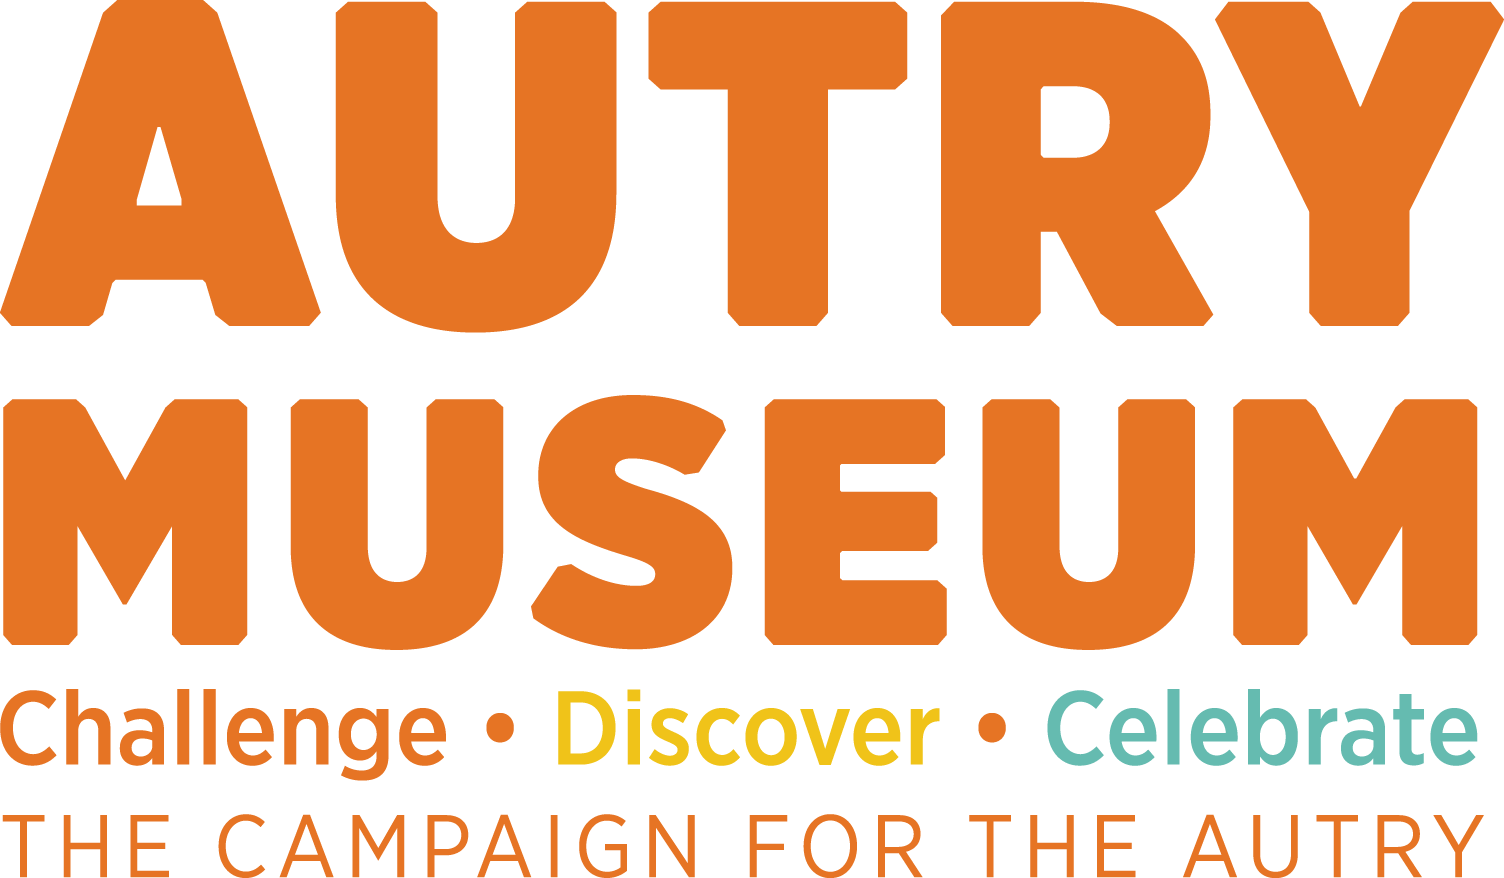 Autry Museum, Challenge Discover Celebrate